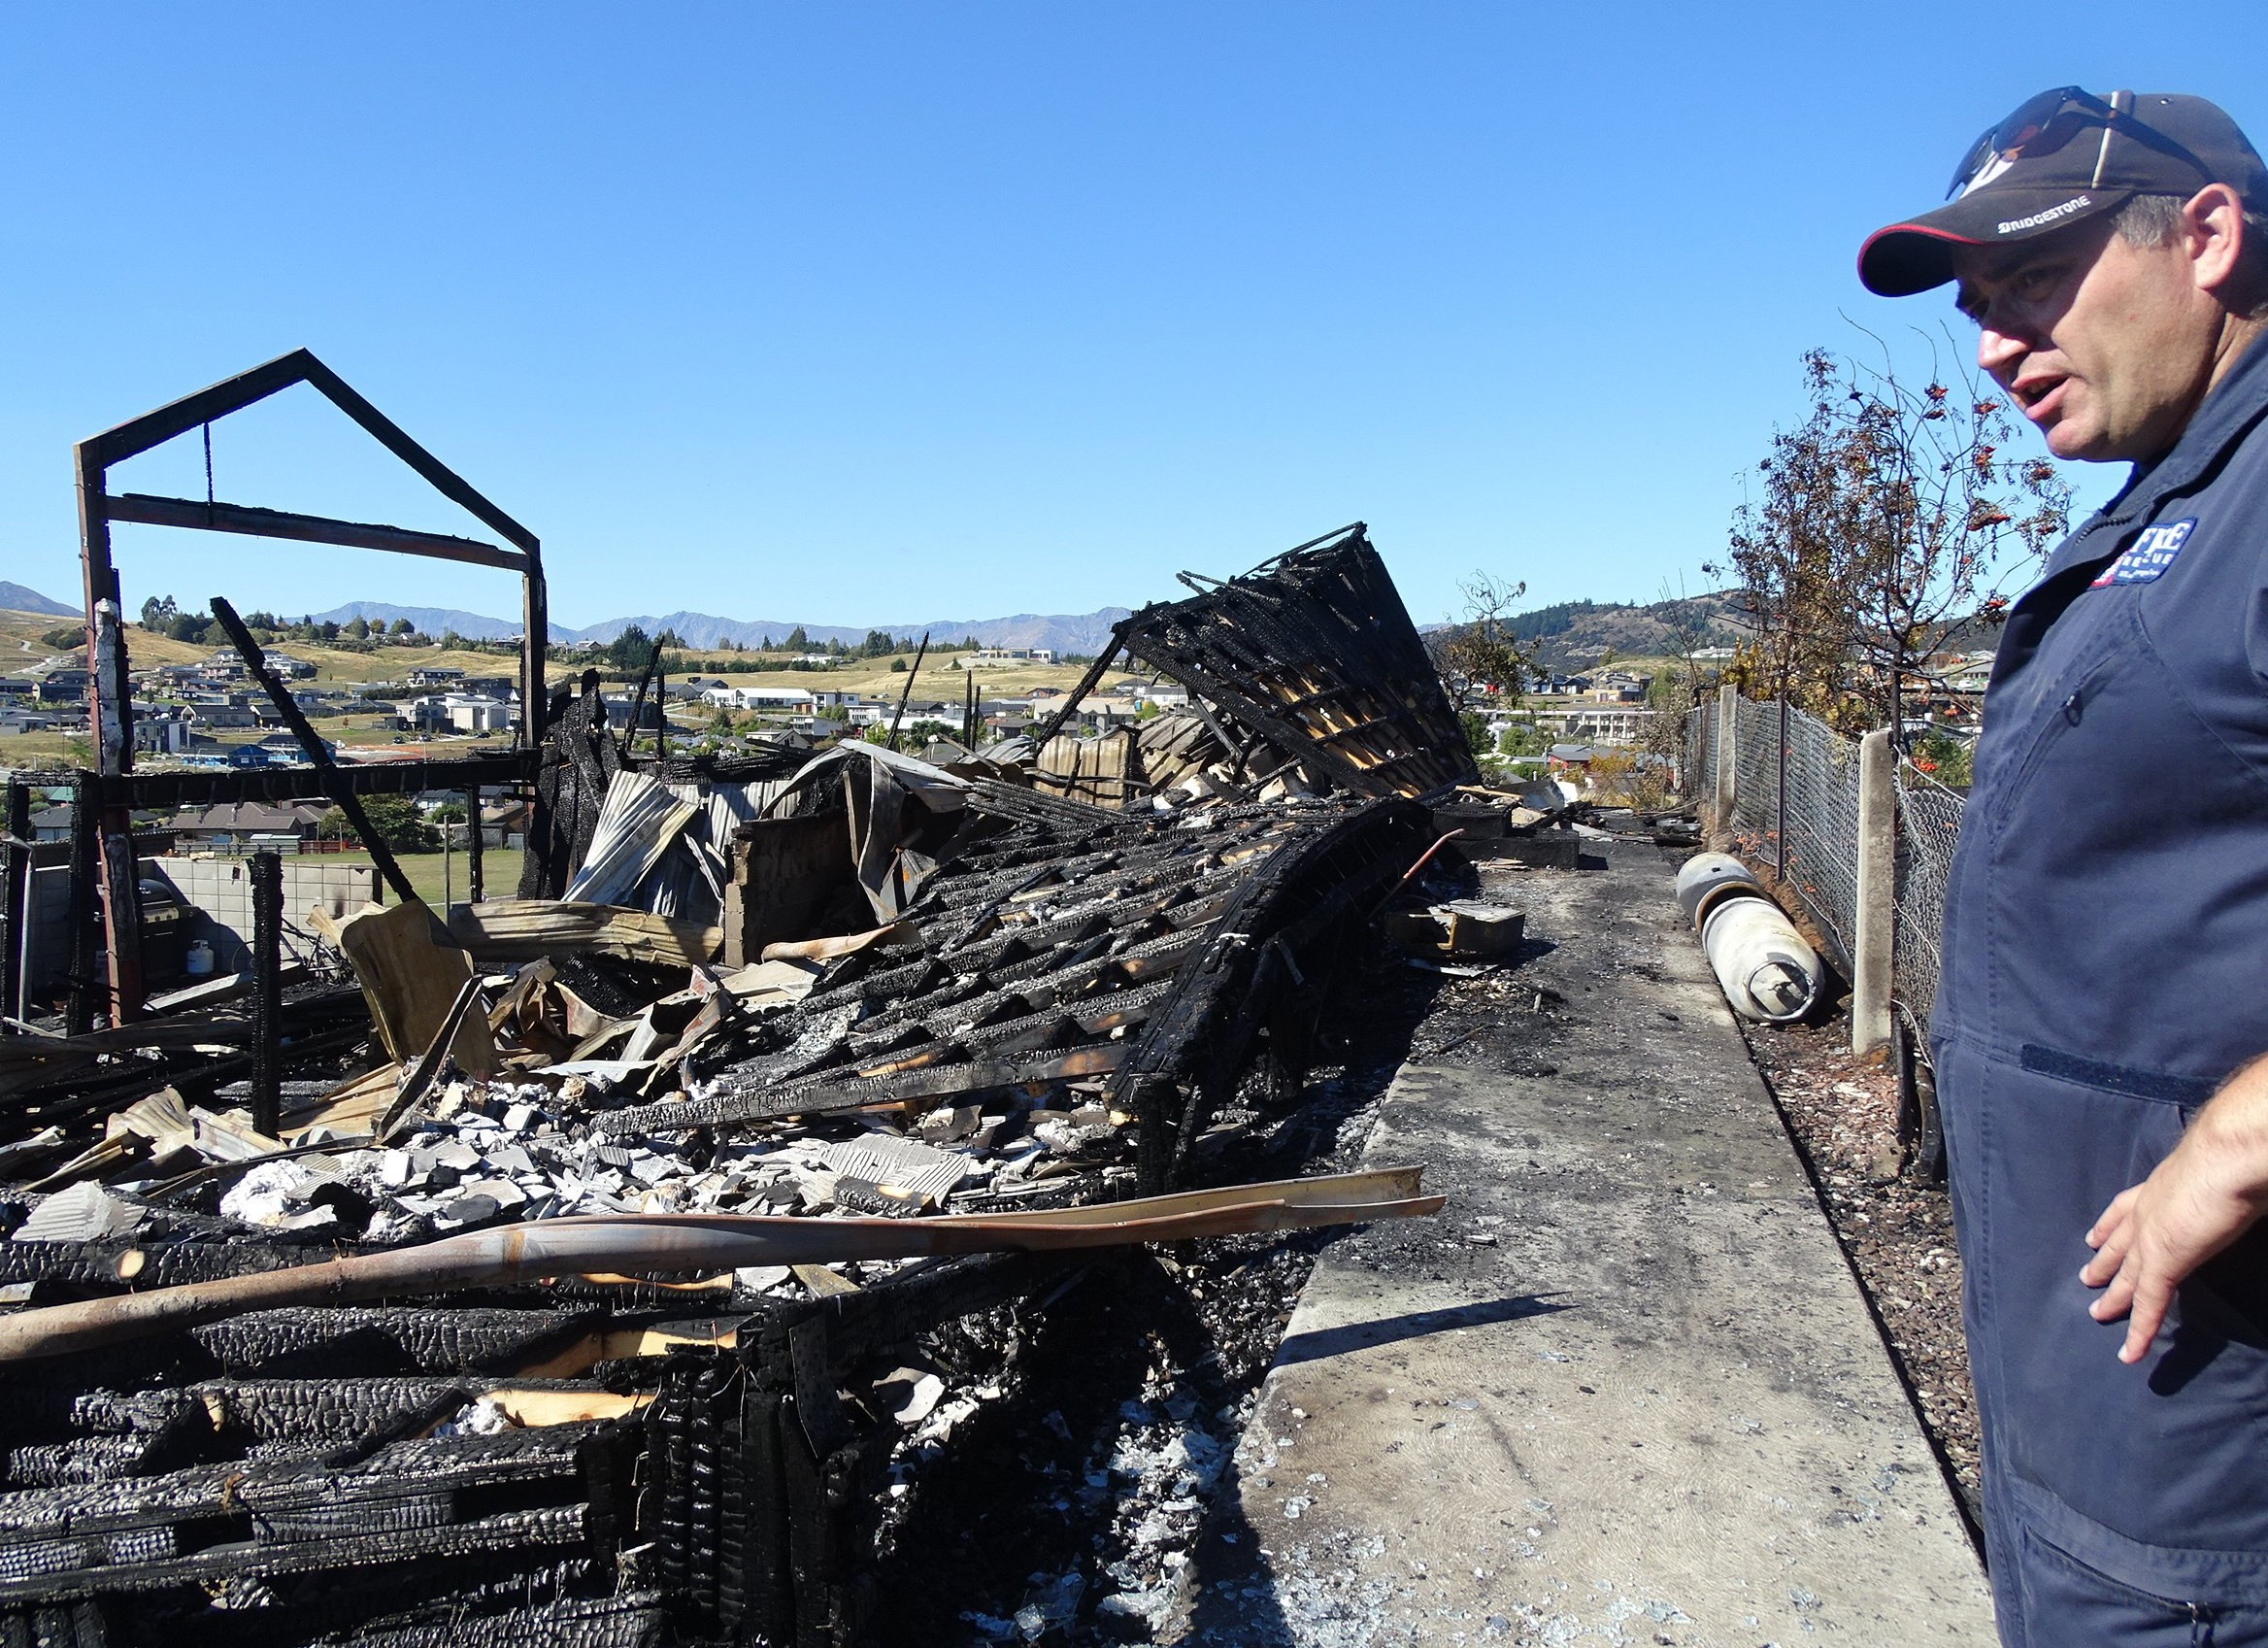 Fire investigator John Smalls examines the destroyed house. Photo: Kerrie Waterworth.